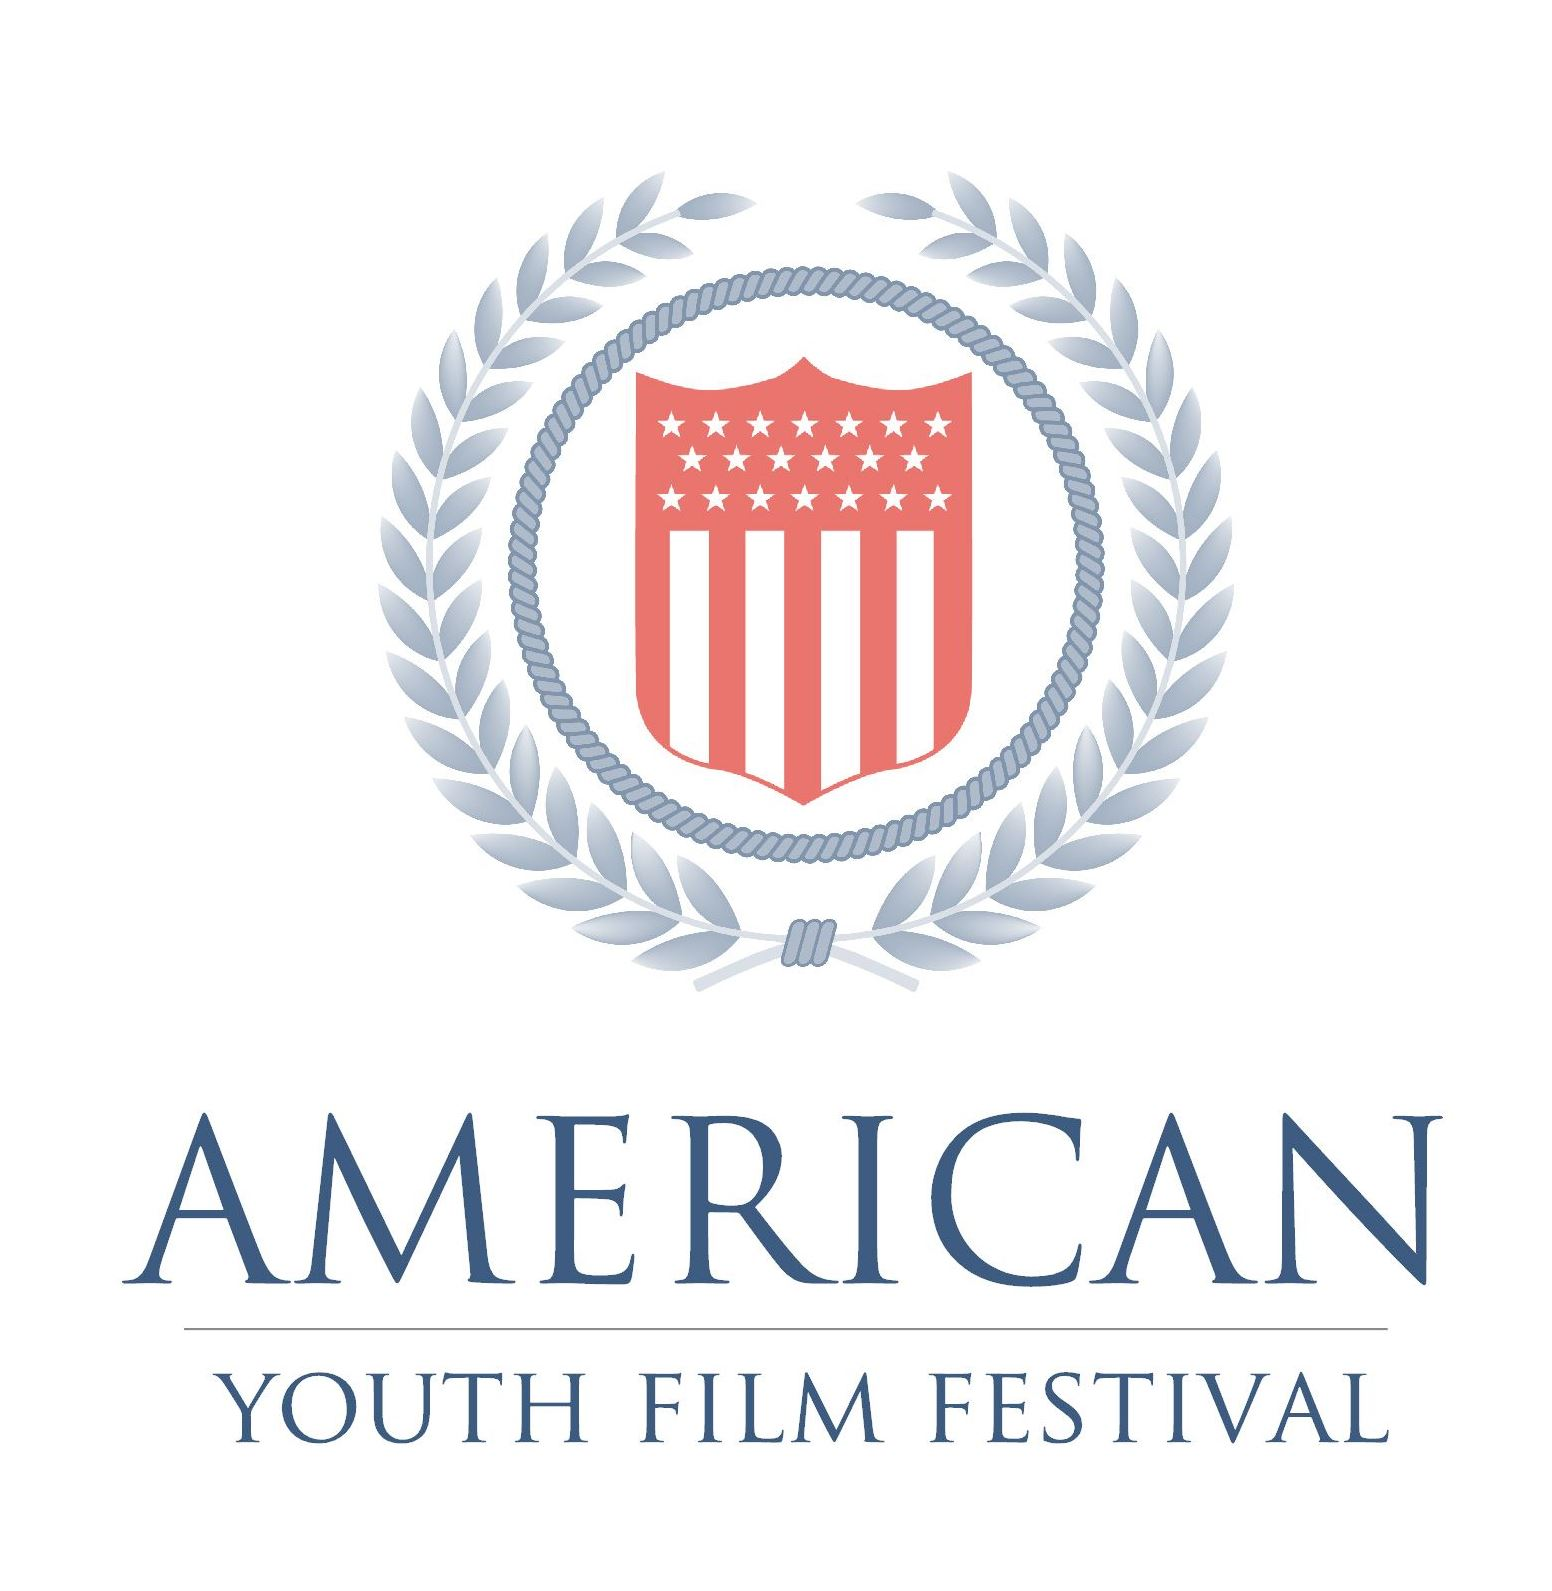 American Youth Film Festival Rewards